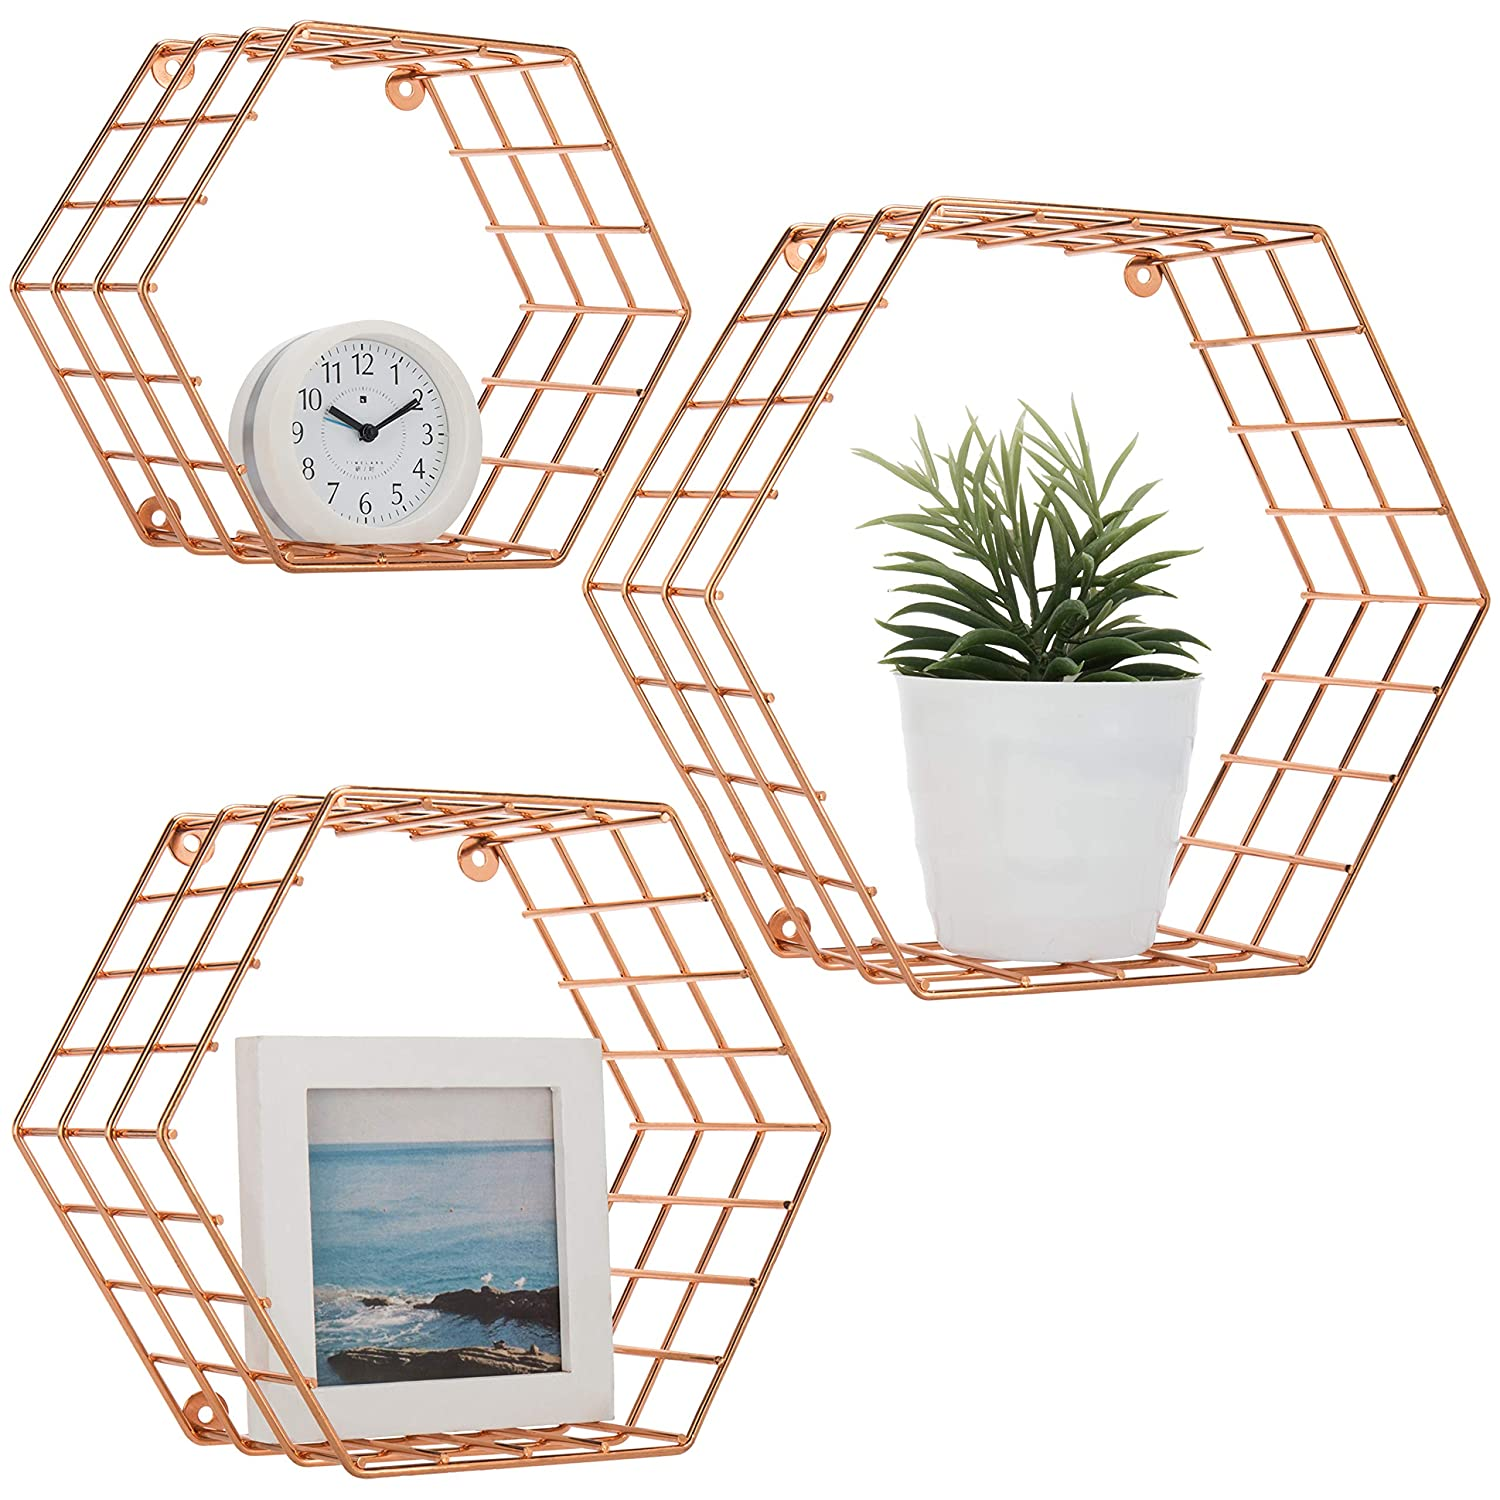 MyGift Hexagonal Copper-Tone Wire Wall-Mounted Hanging Shelves, Set of 3